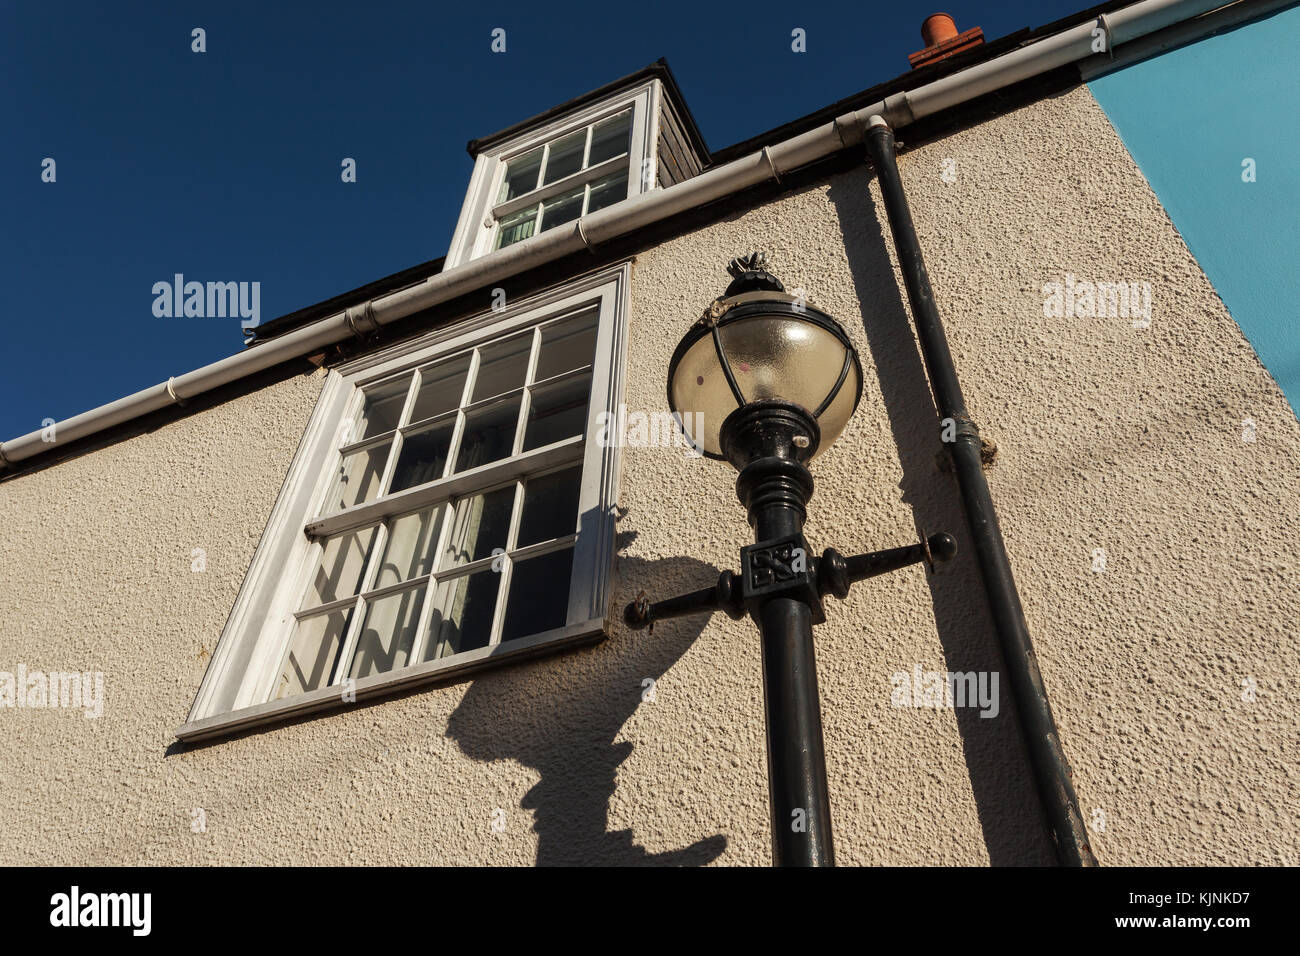 Street light in Weymouth - Stock Image